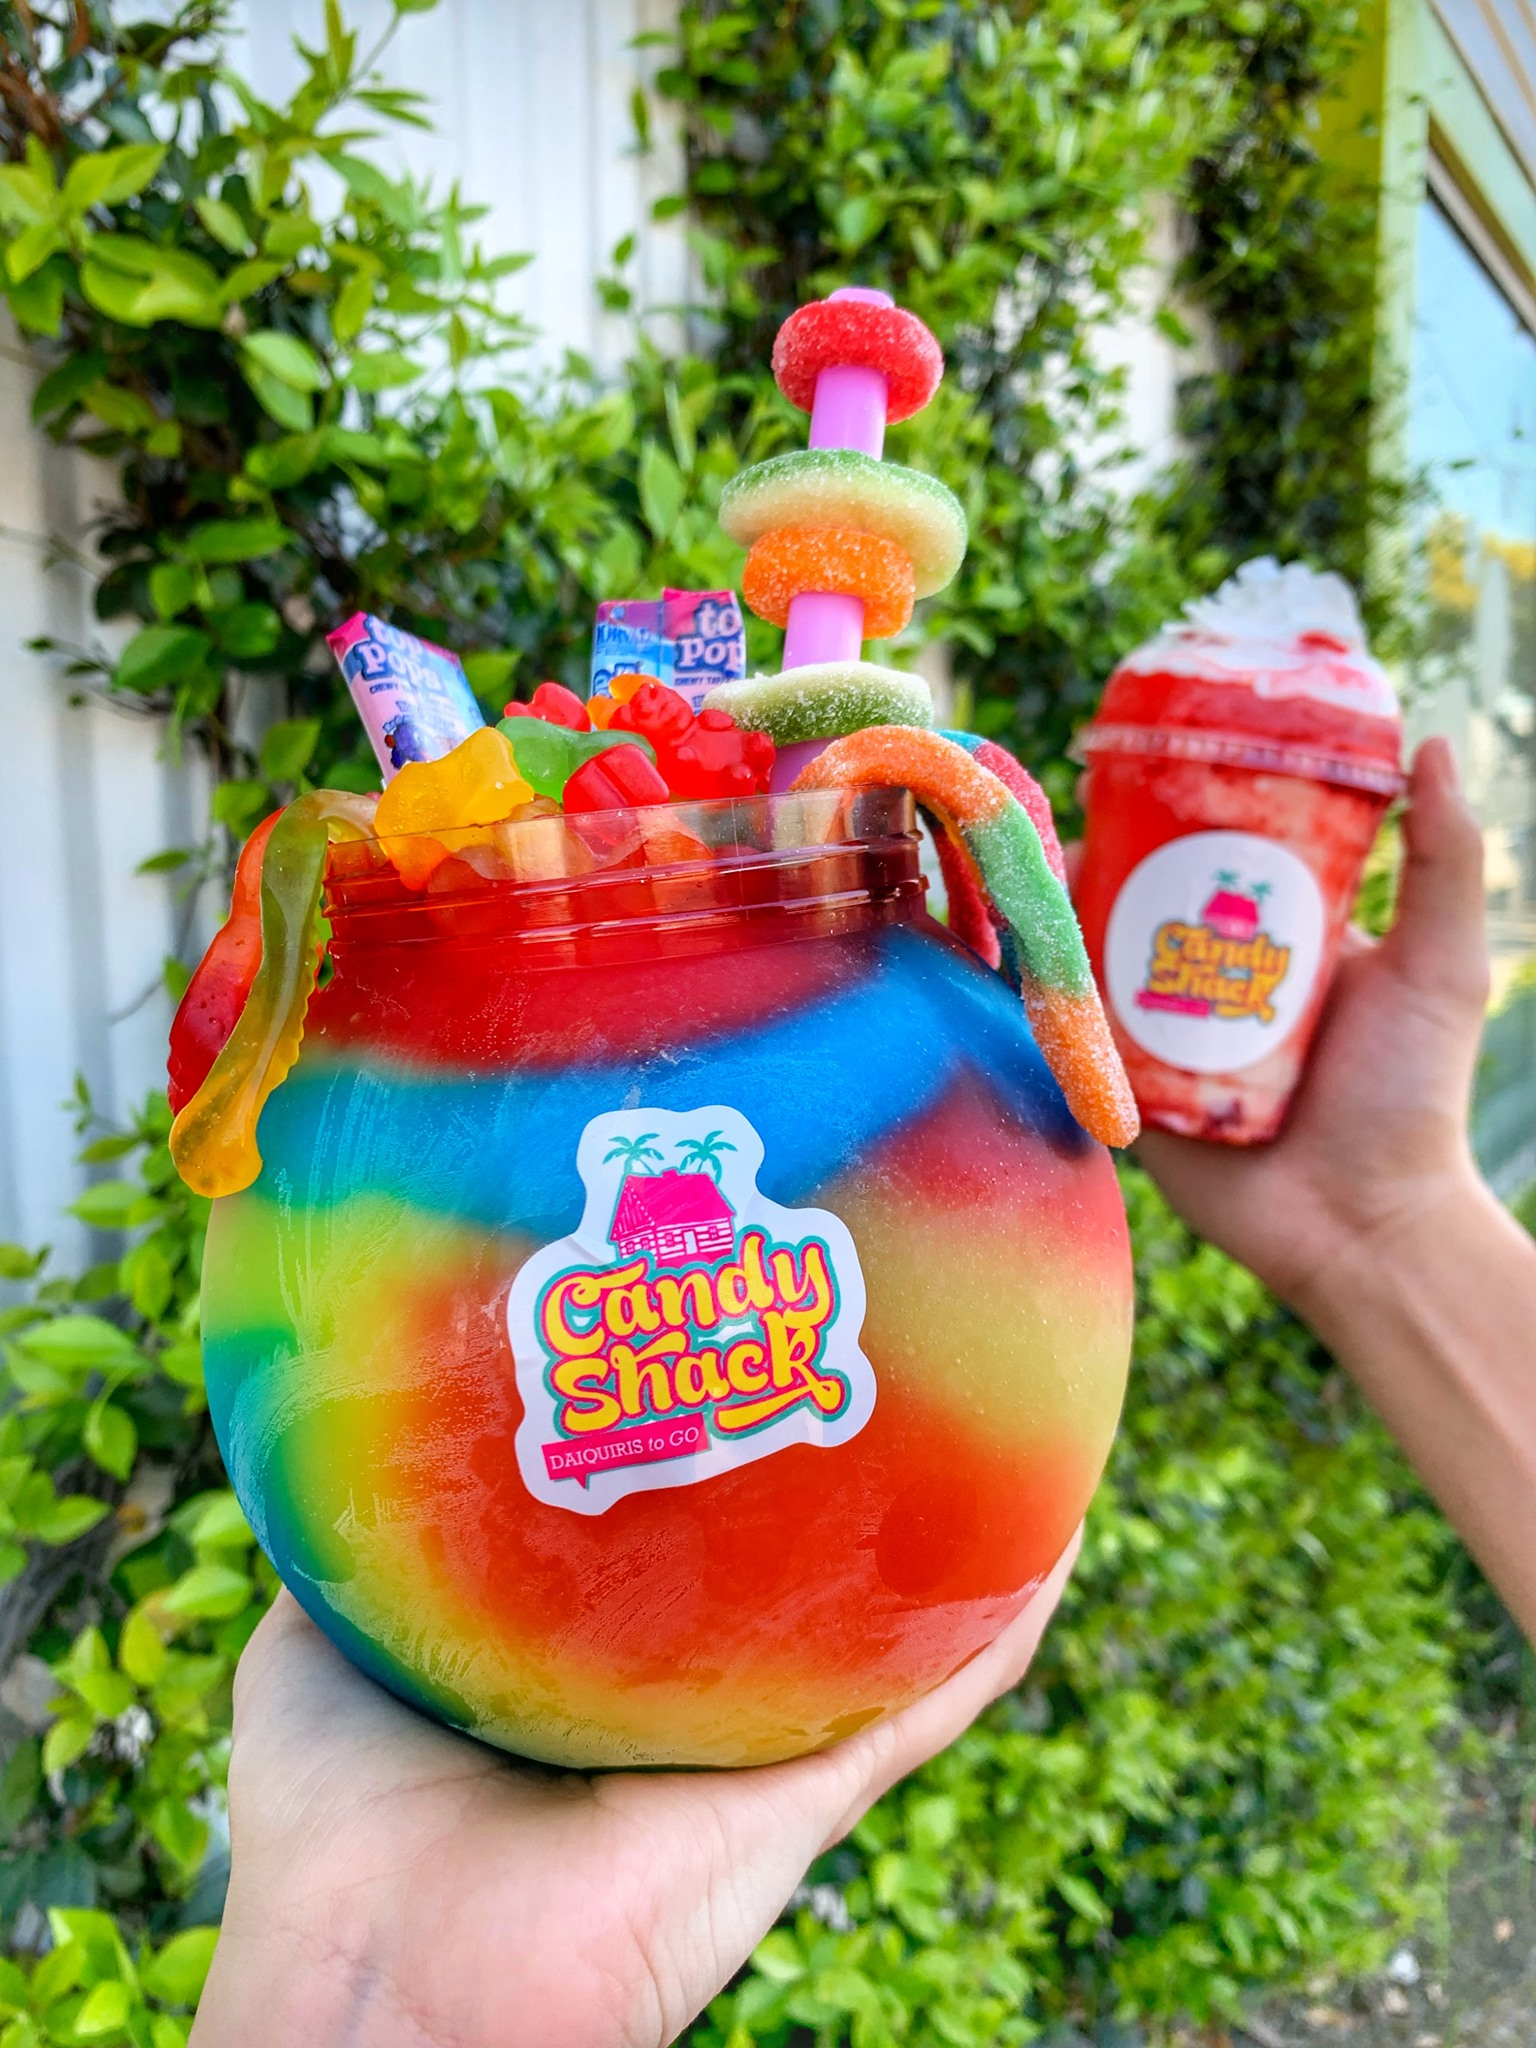 A fishbowl of frozen daiquiri garnished with candy